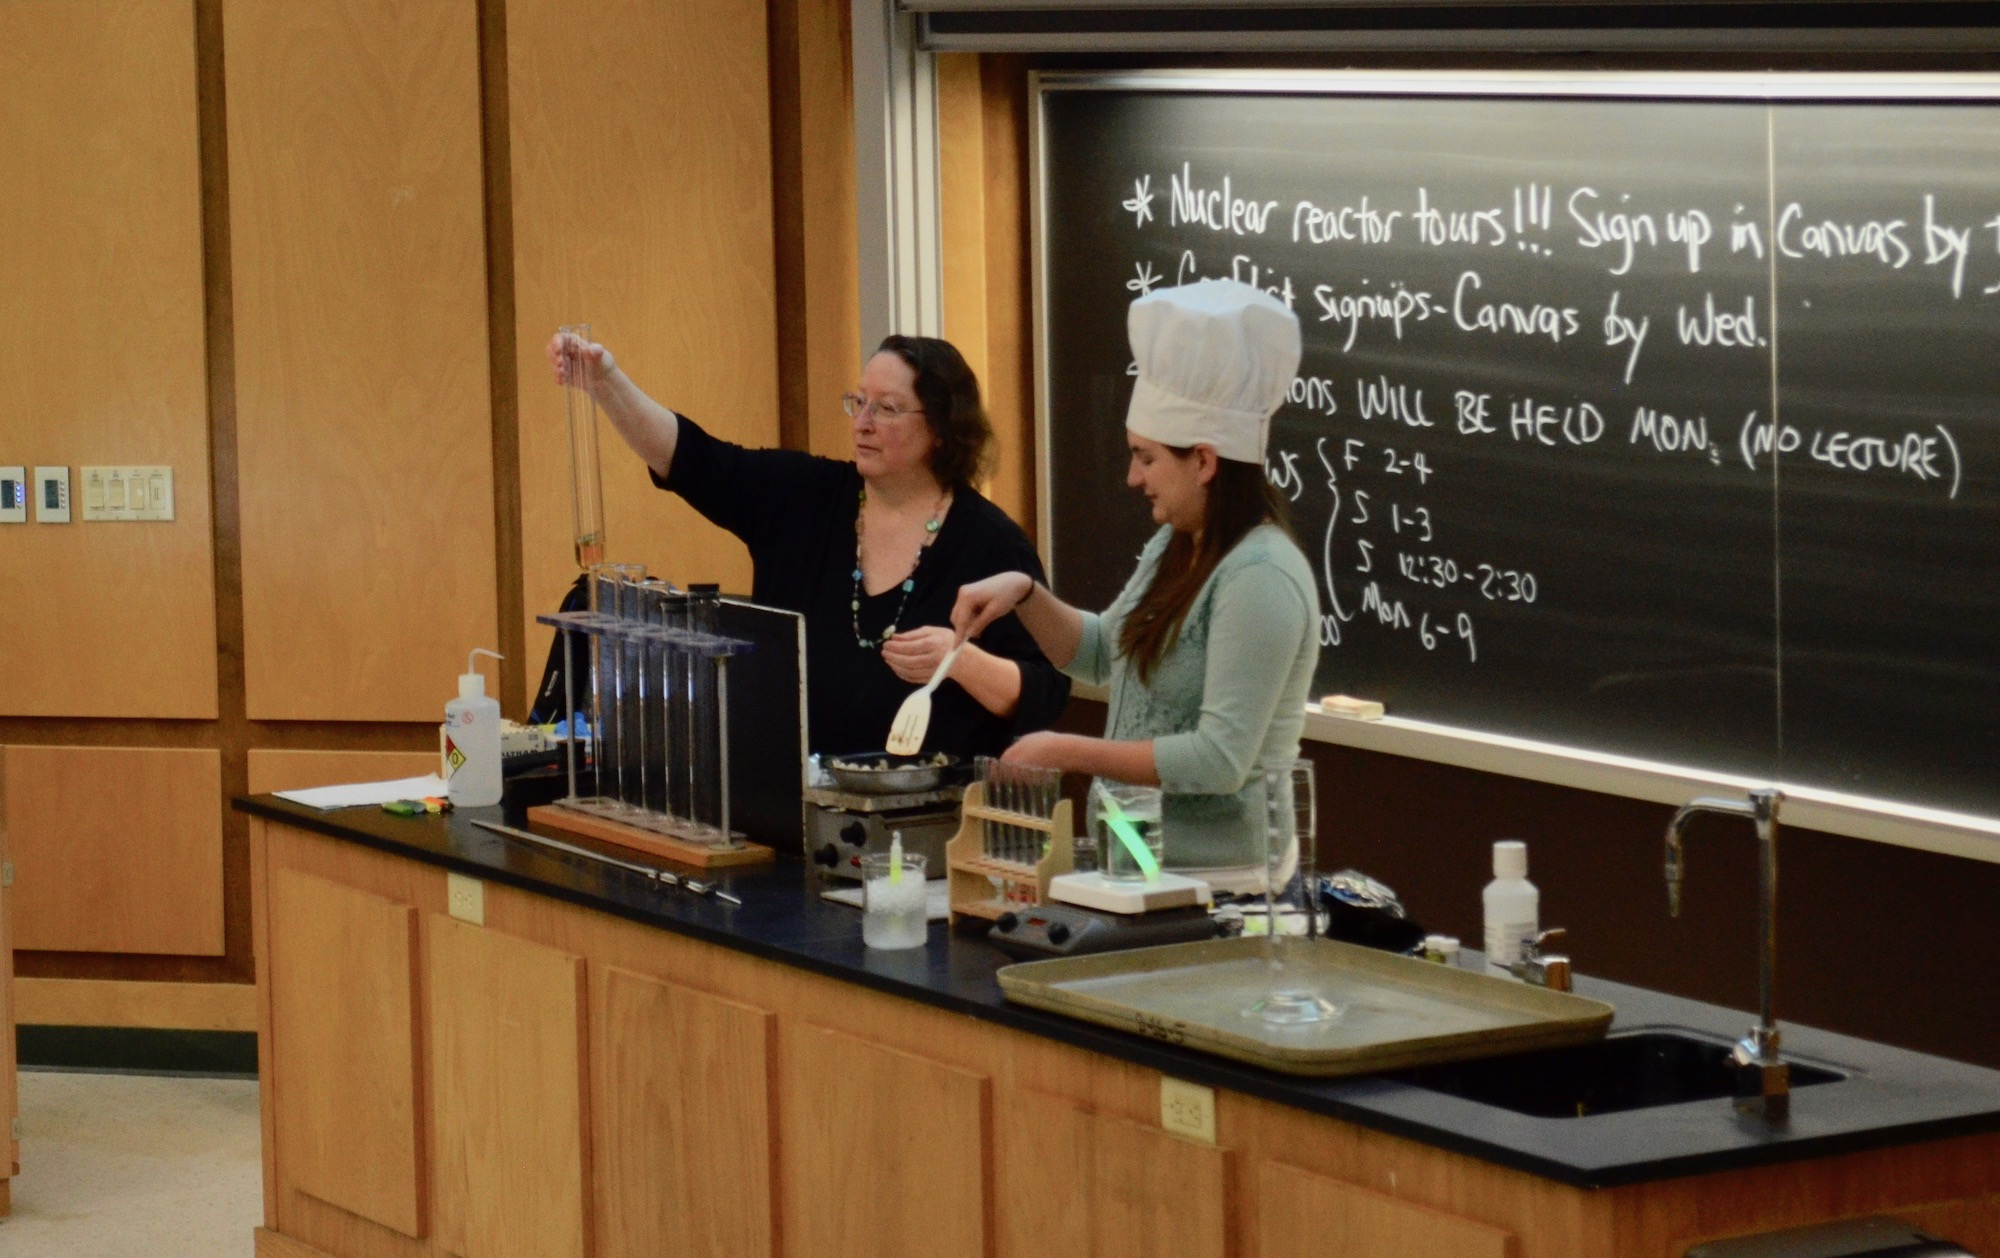 Chem 112: Offering a Personalized Learning Experience